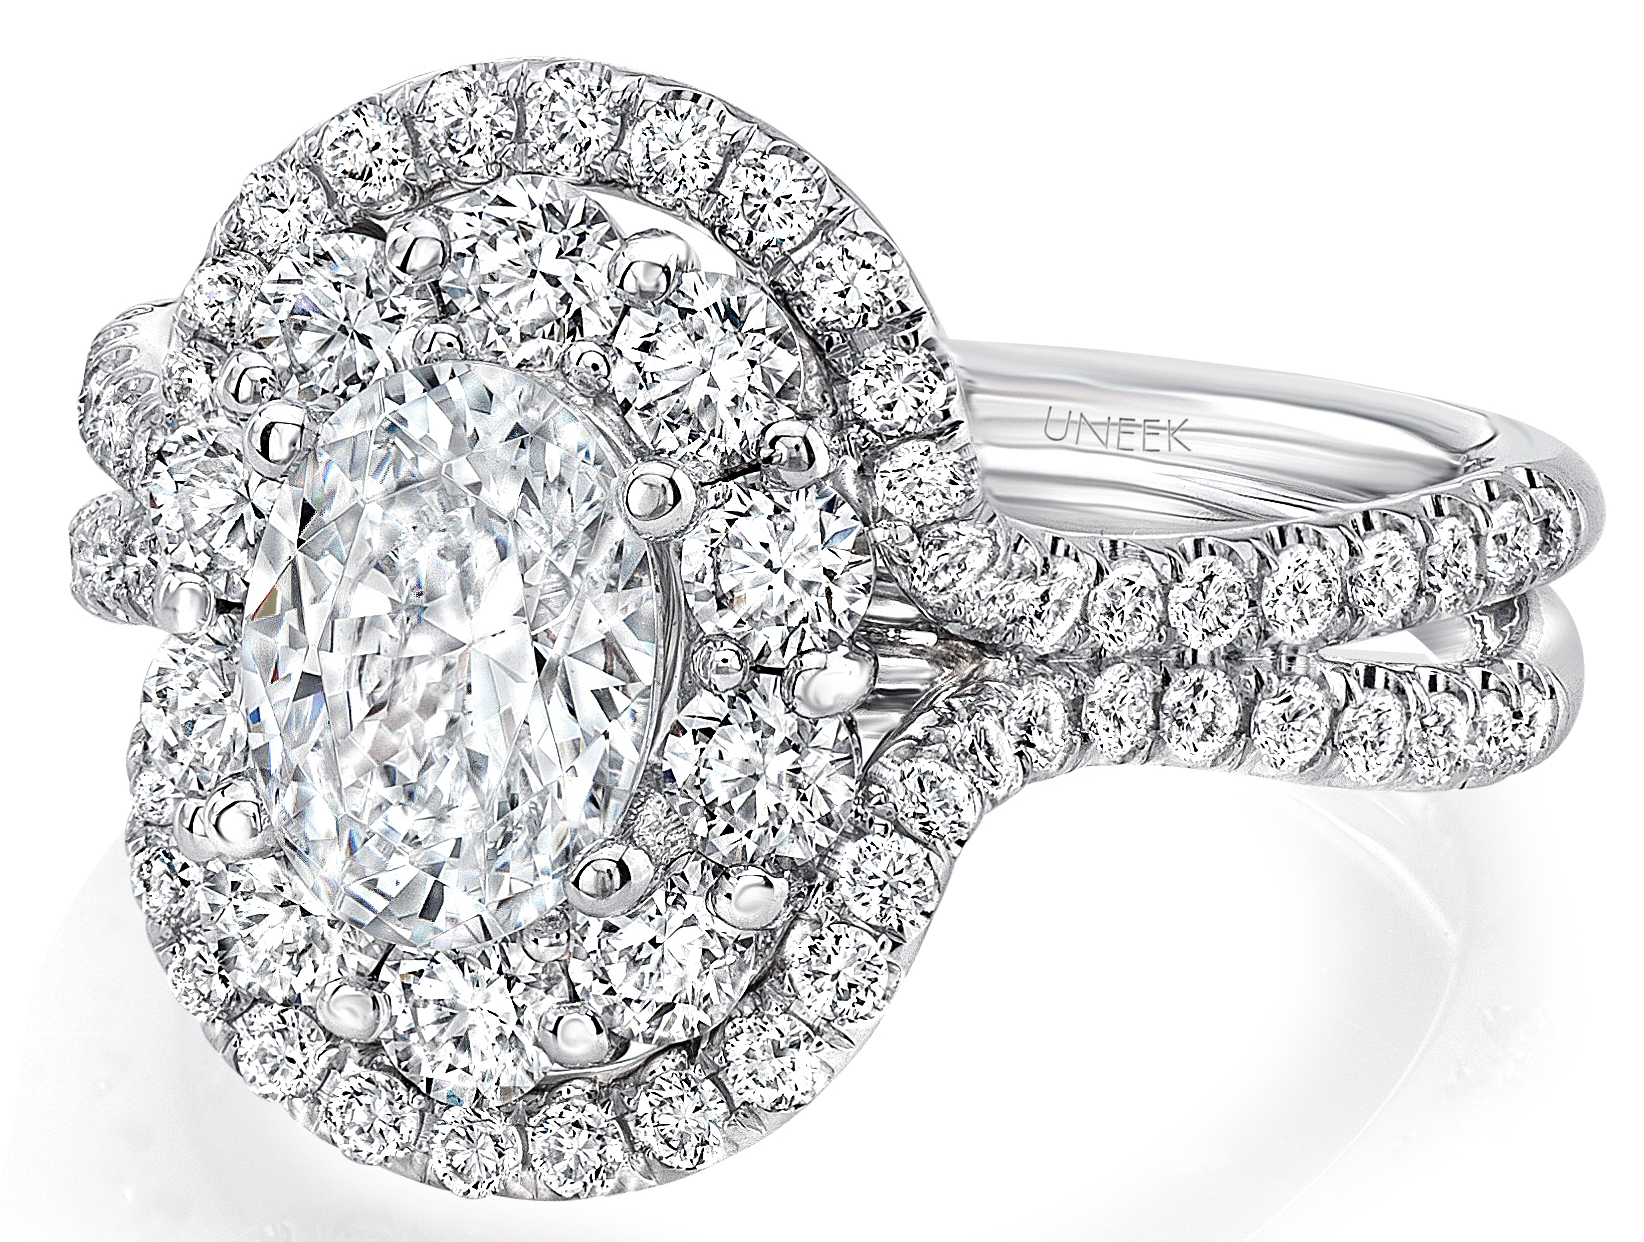 Uneek Silhouette oval diamond engagement ring | JCK On Your Market